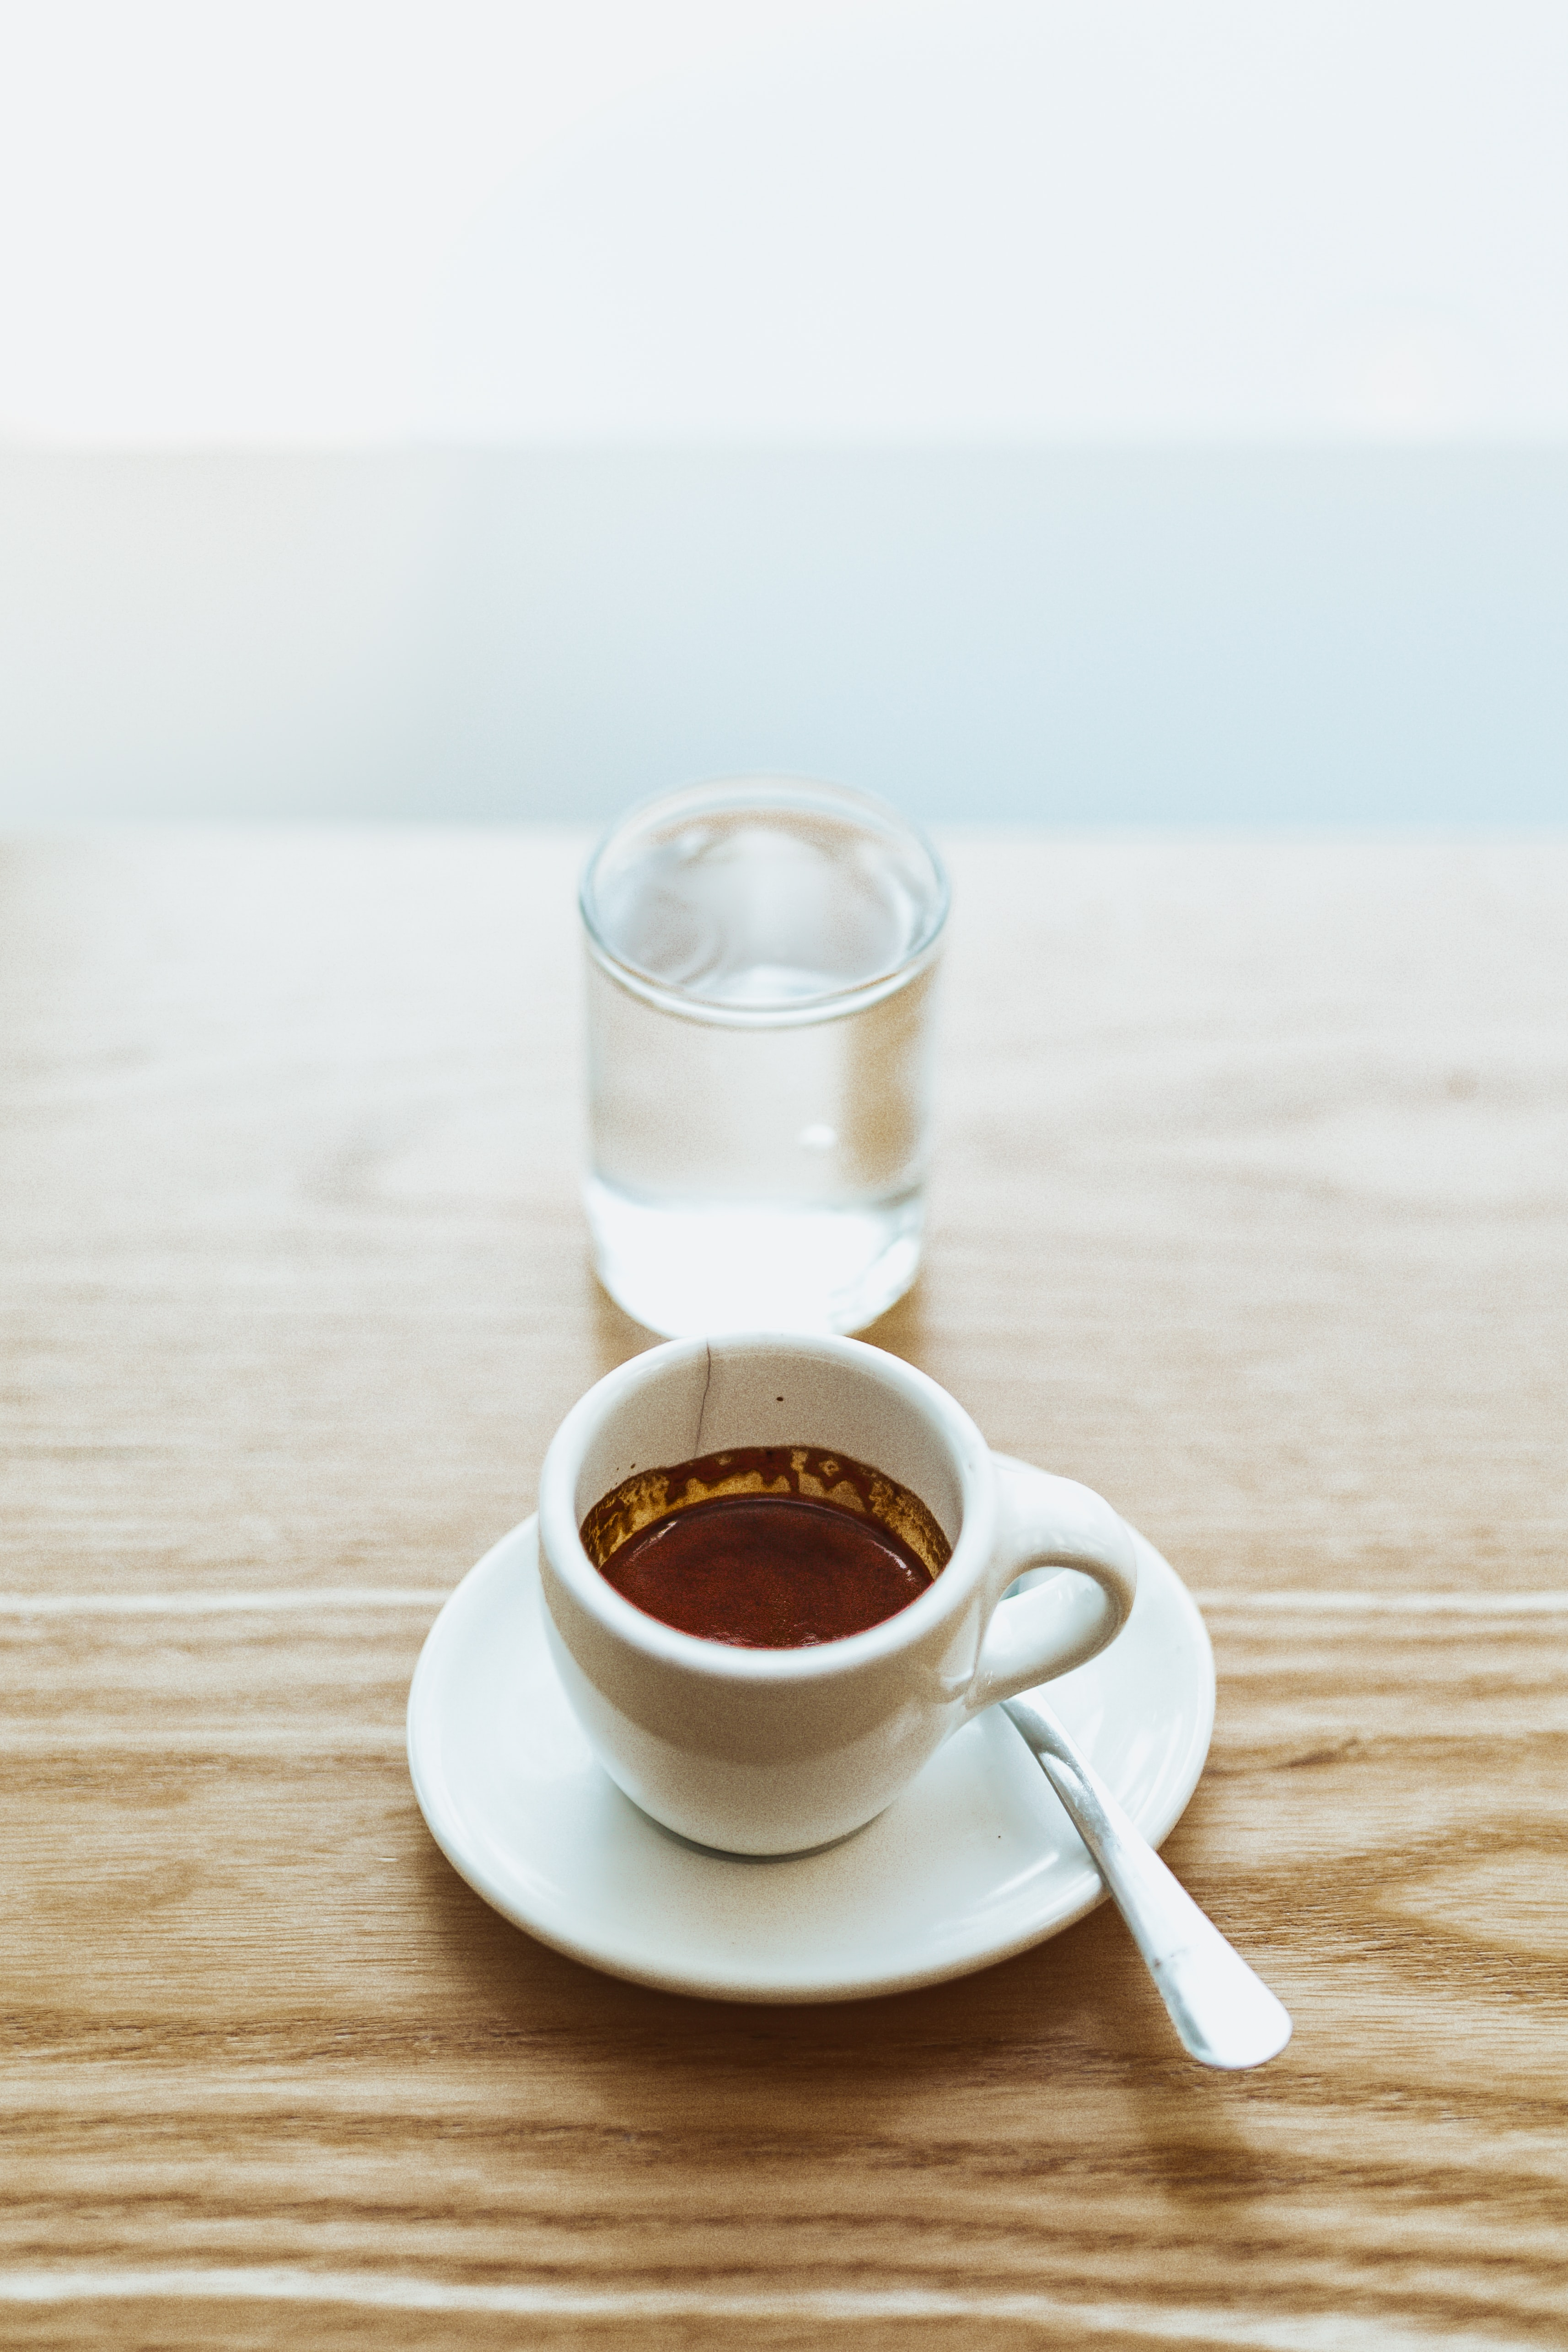 white cup with chocolate drink inside